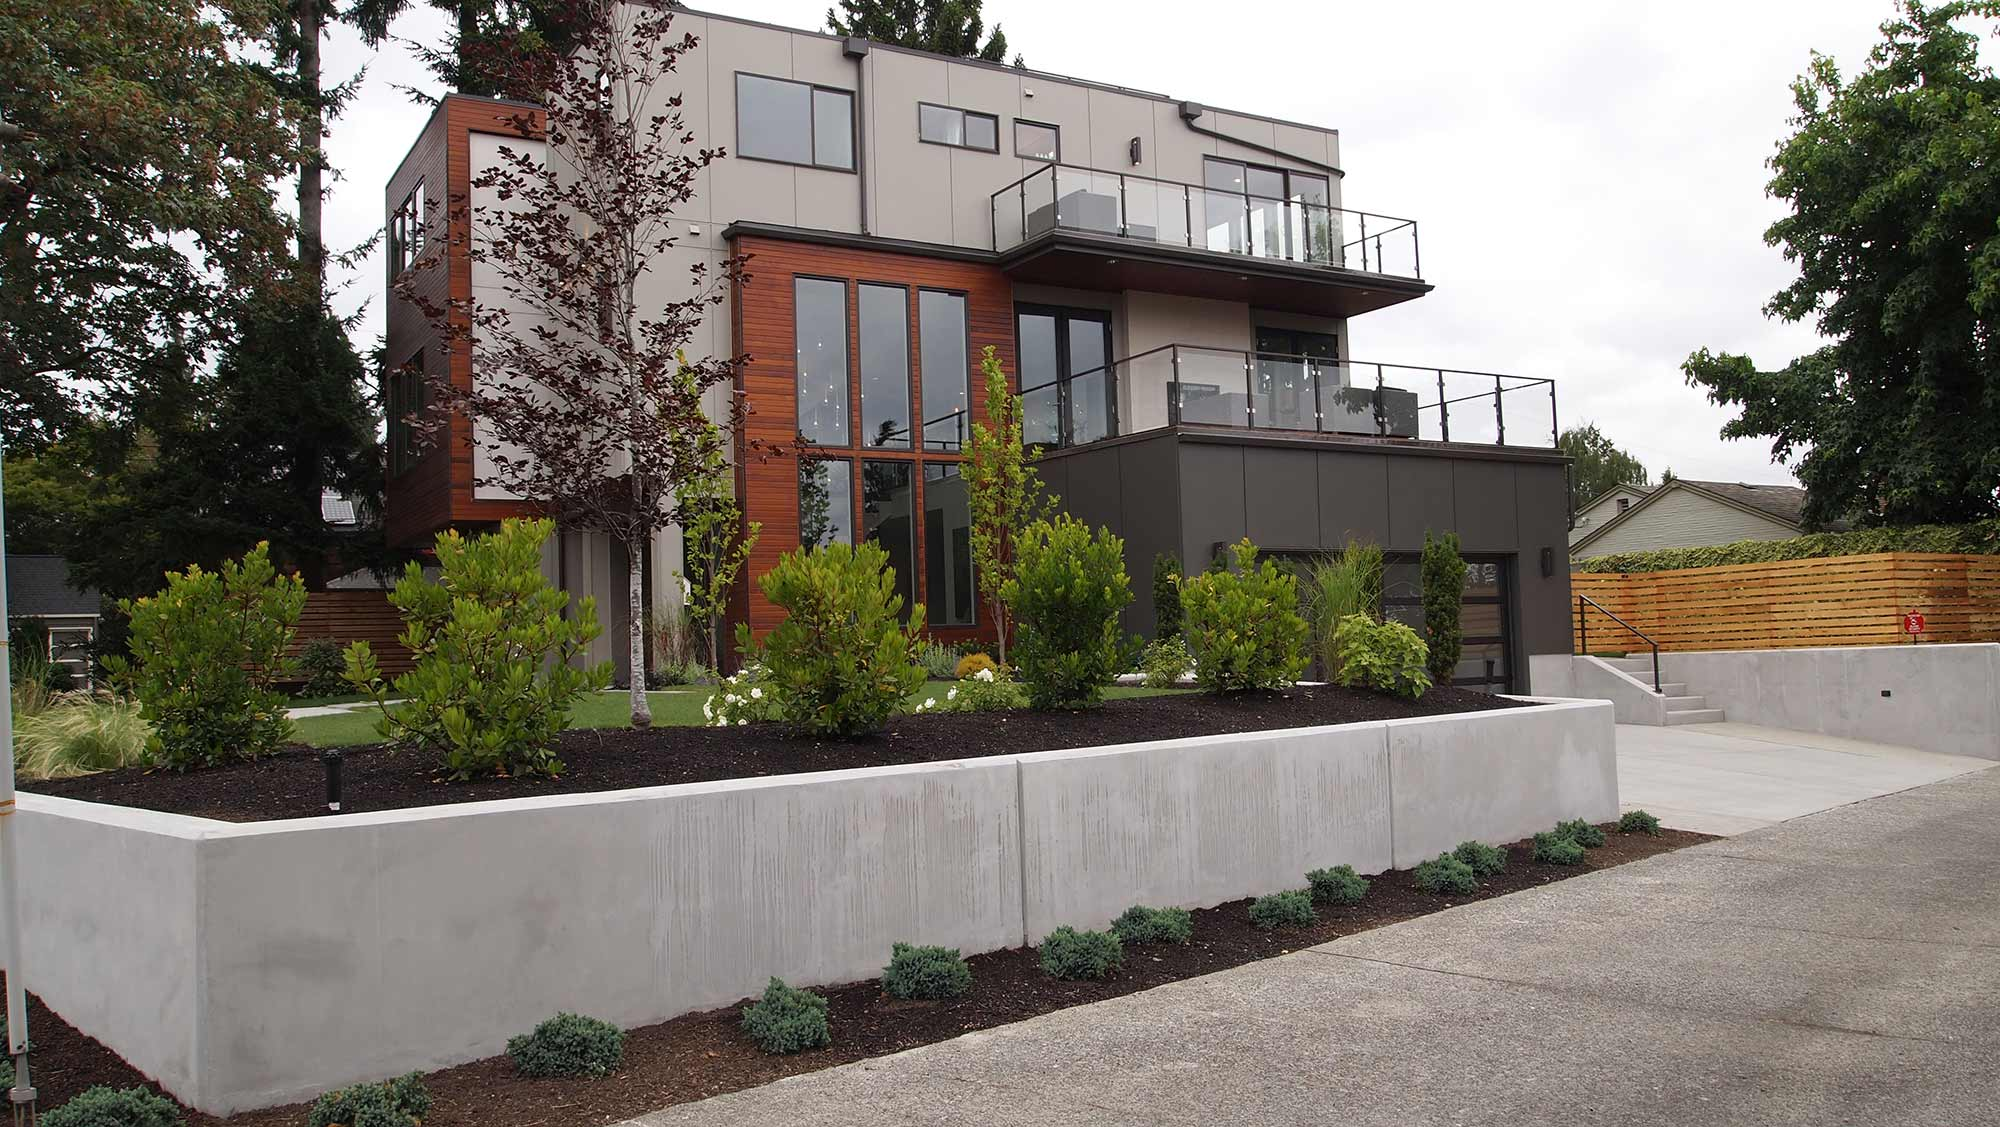 CONCRETE WALLS TO RETAIN THE GRADE AND BUFFERING EVERGREEN SHRUBS FOR PRIVACY